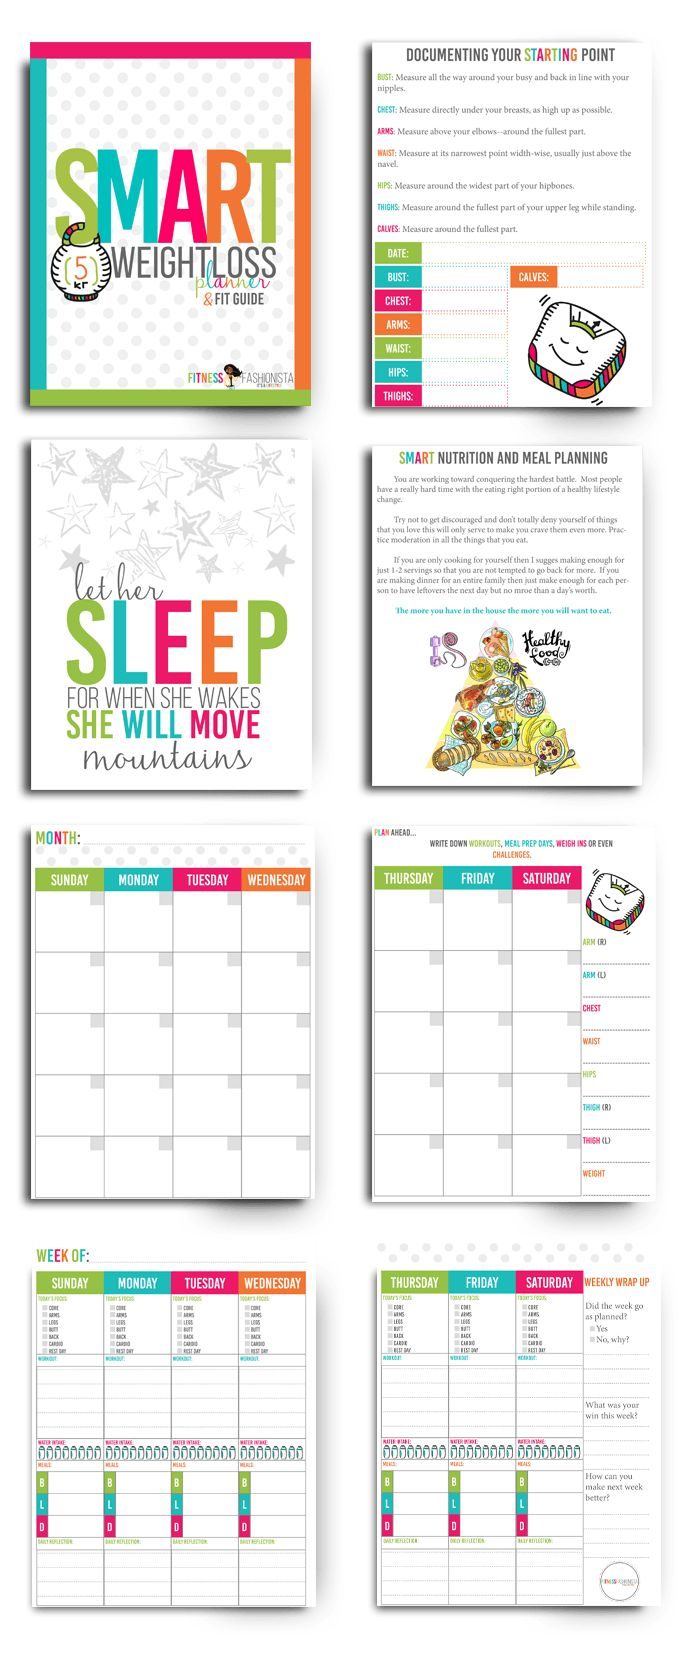 It's time to take control of your weight loss and fitness goals.  The SMART Weight Loss  Planner is here to help you do just that. Weight loss the SMART way is all about creating very specific yet realistic goals.   SMART is a goal planning strategy used in classrooms and I just knew it would be perfect for also reaching weight loss goals.  This download also includes the Fit Guide with helpful information and resources to help you create a healthier lifestyle.